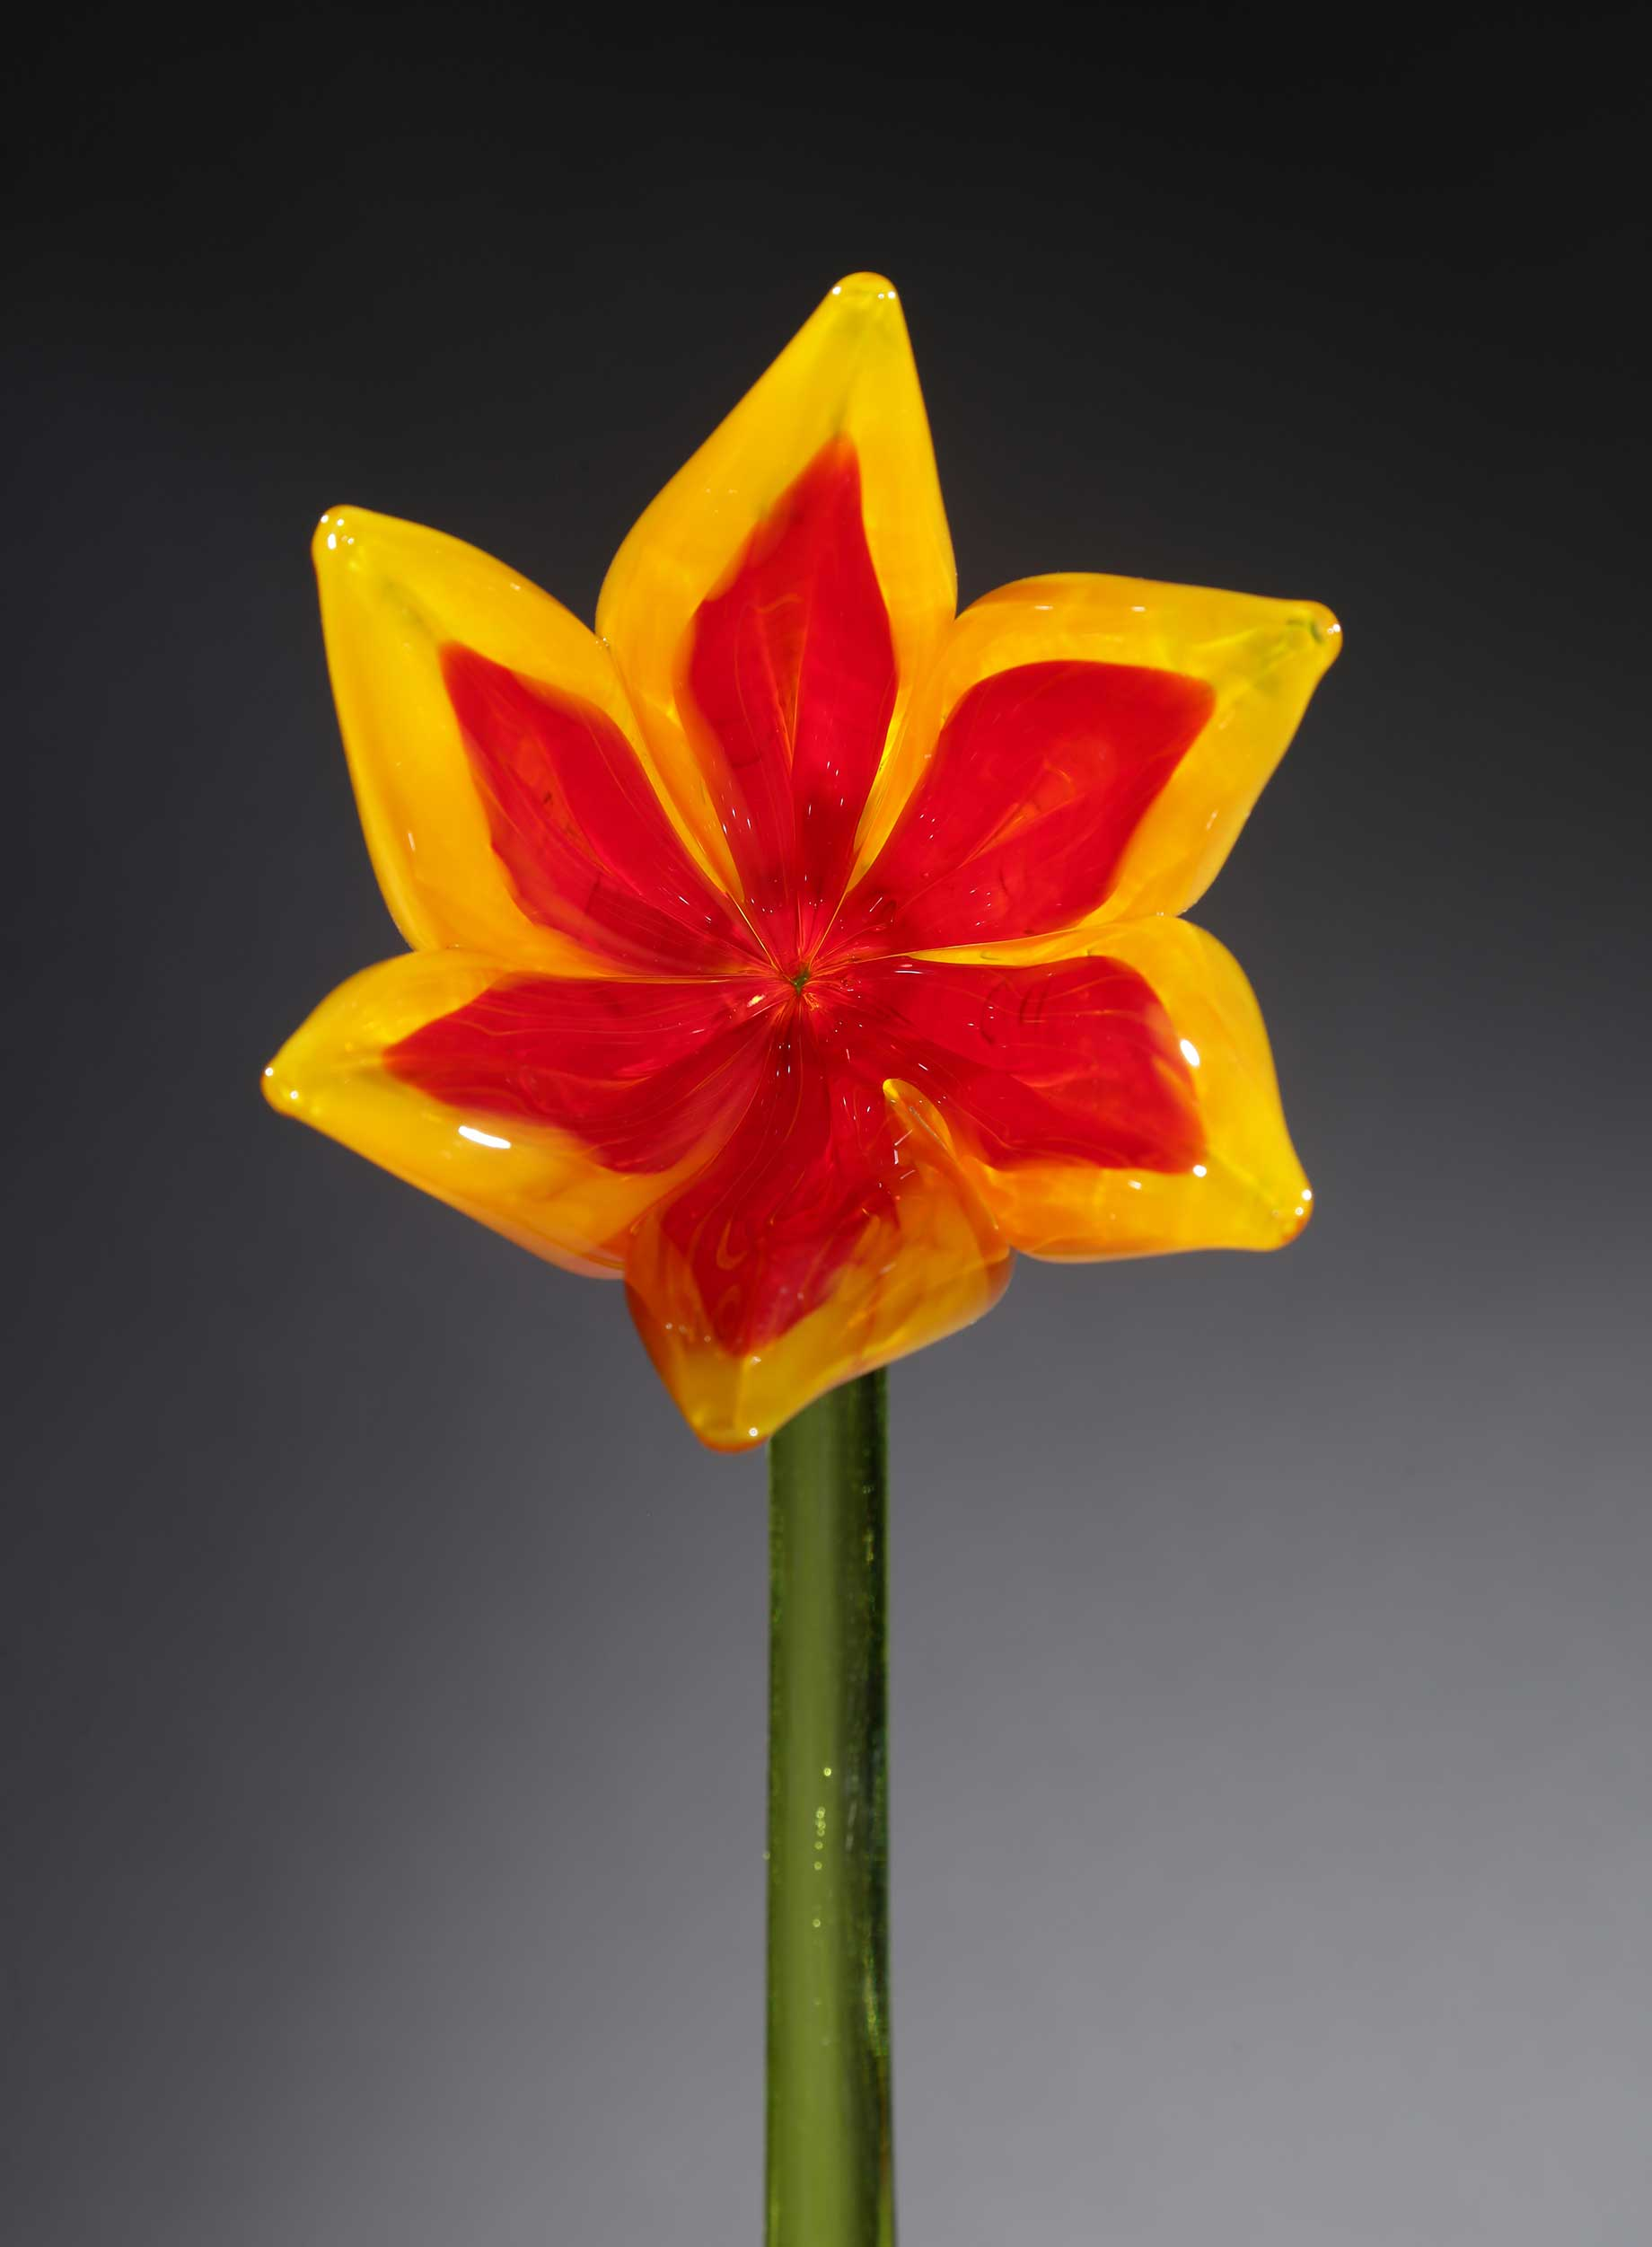 Flower Tulip Yellow Red